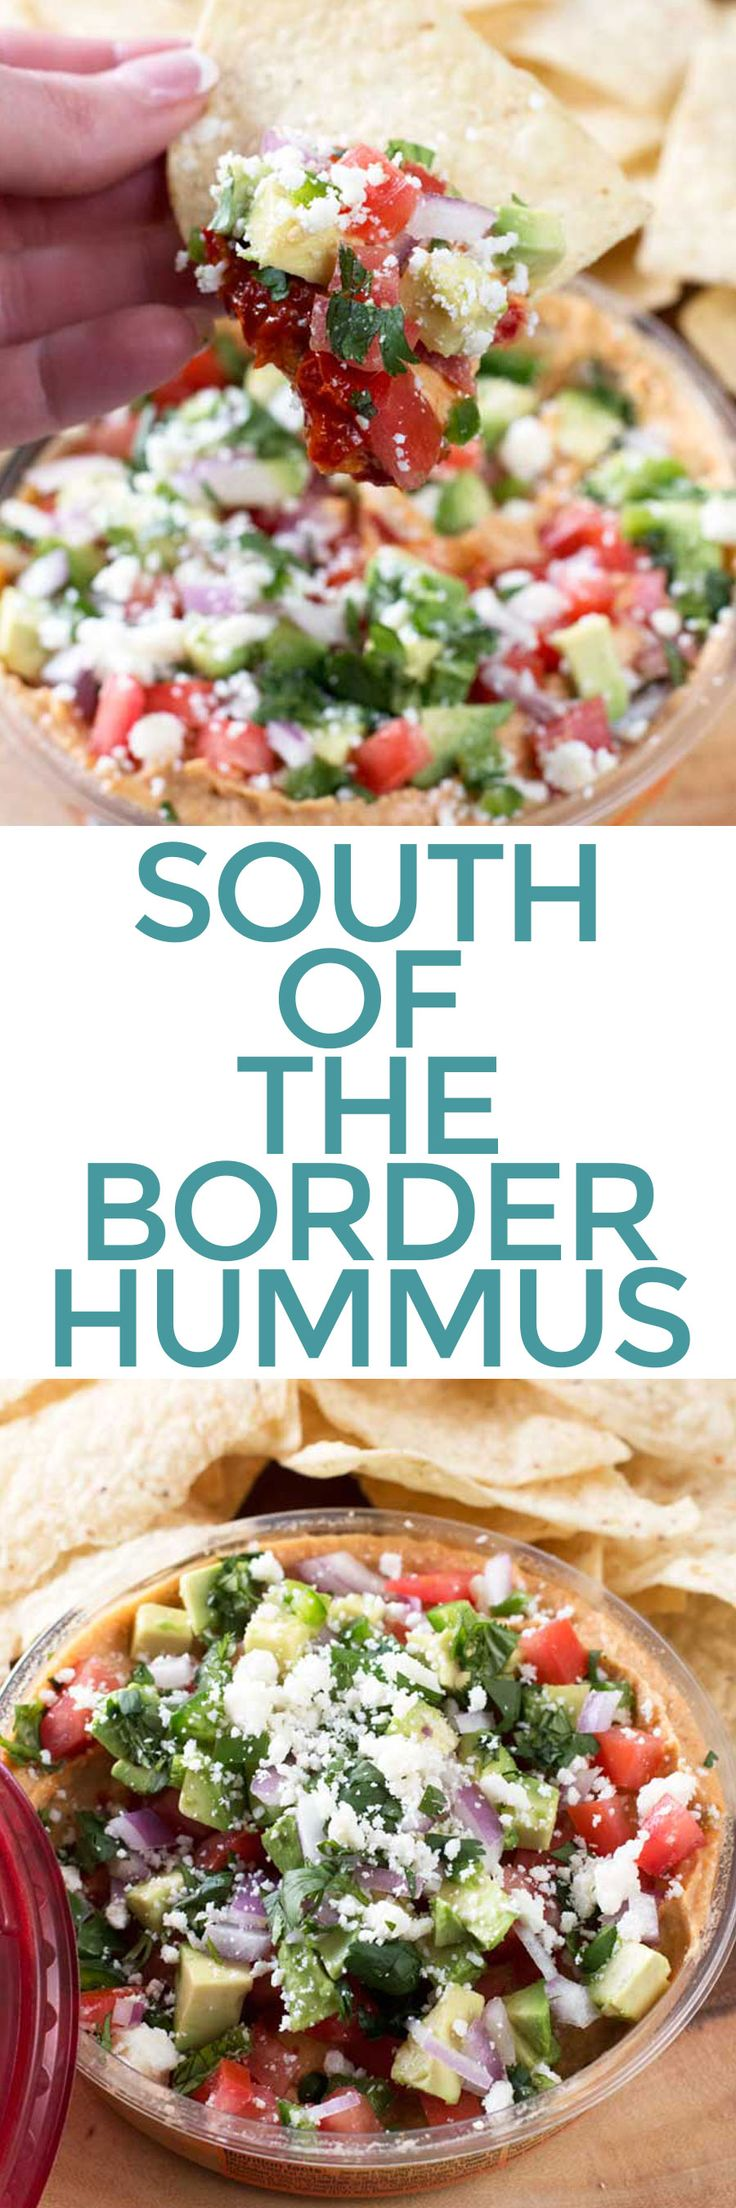 South of the Border Hummus – Cake 'n Knife